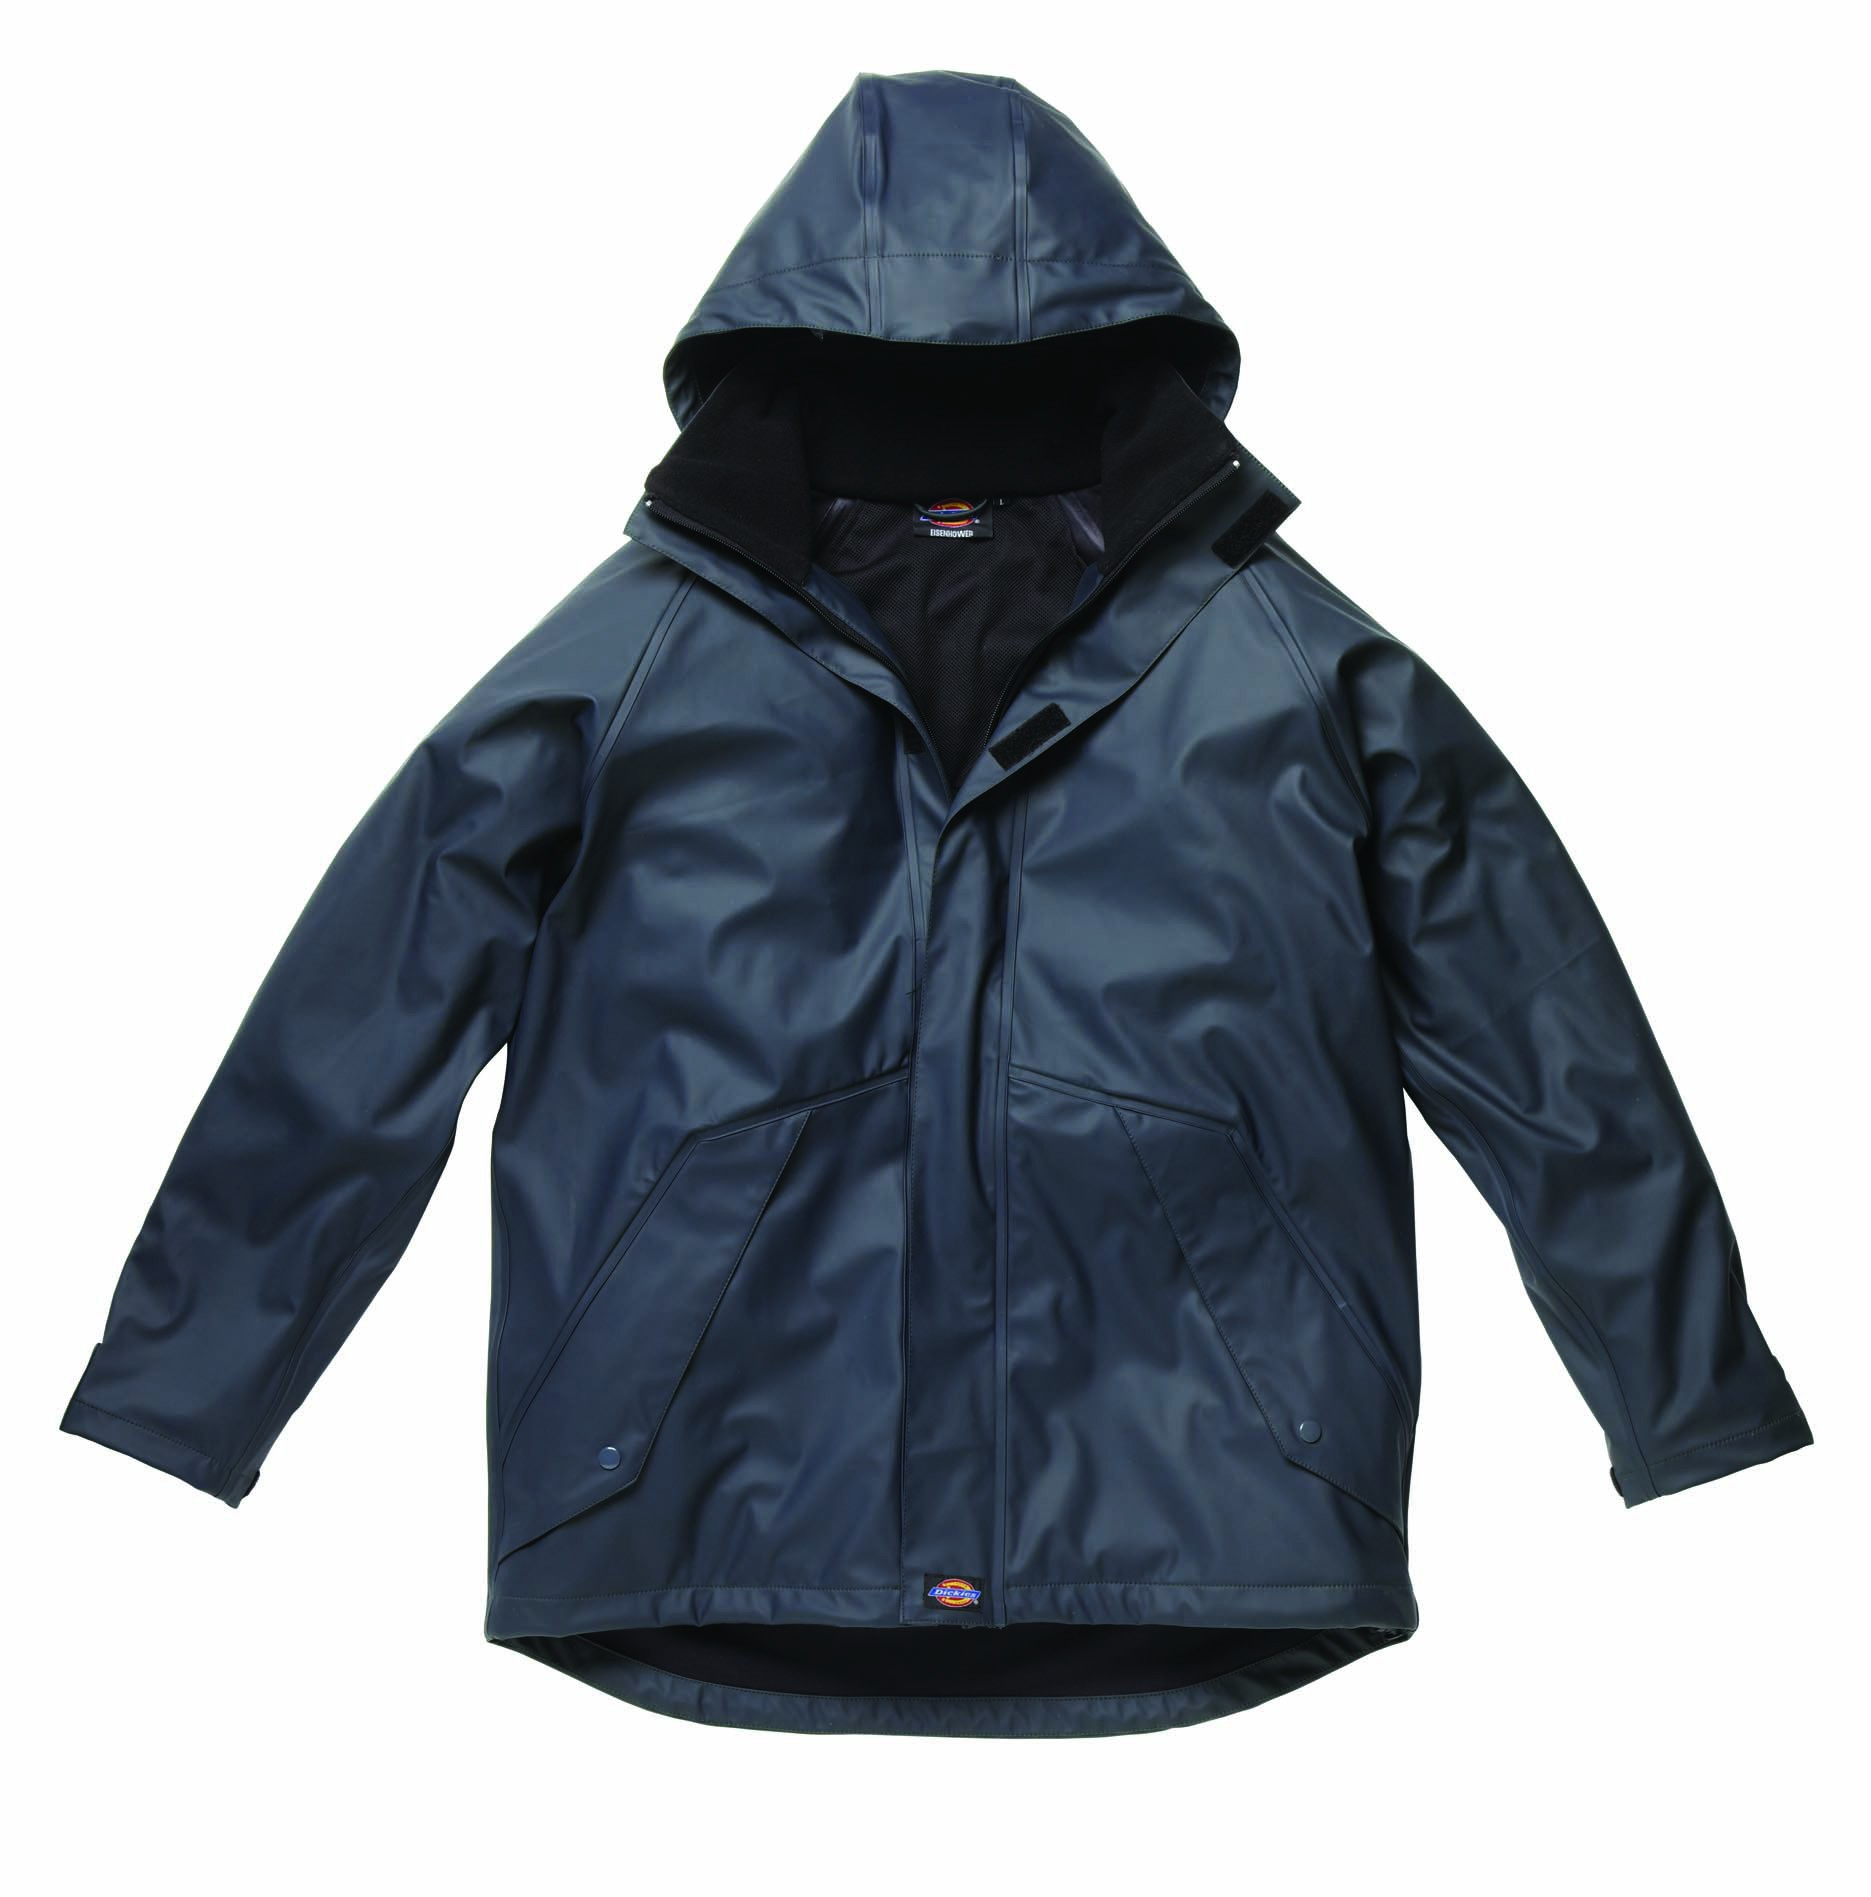 Dickies Raintite Jacket